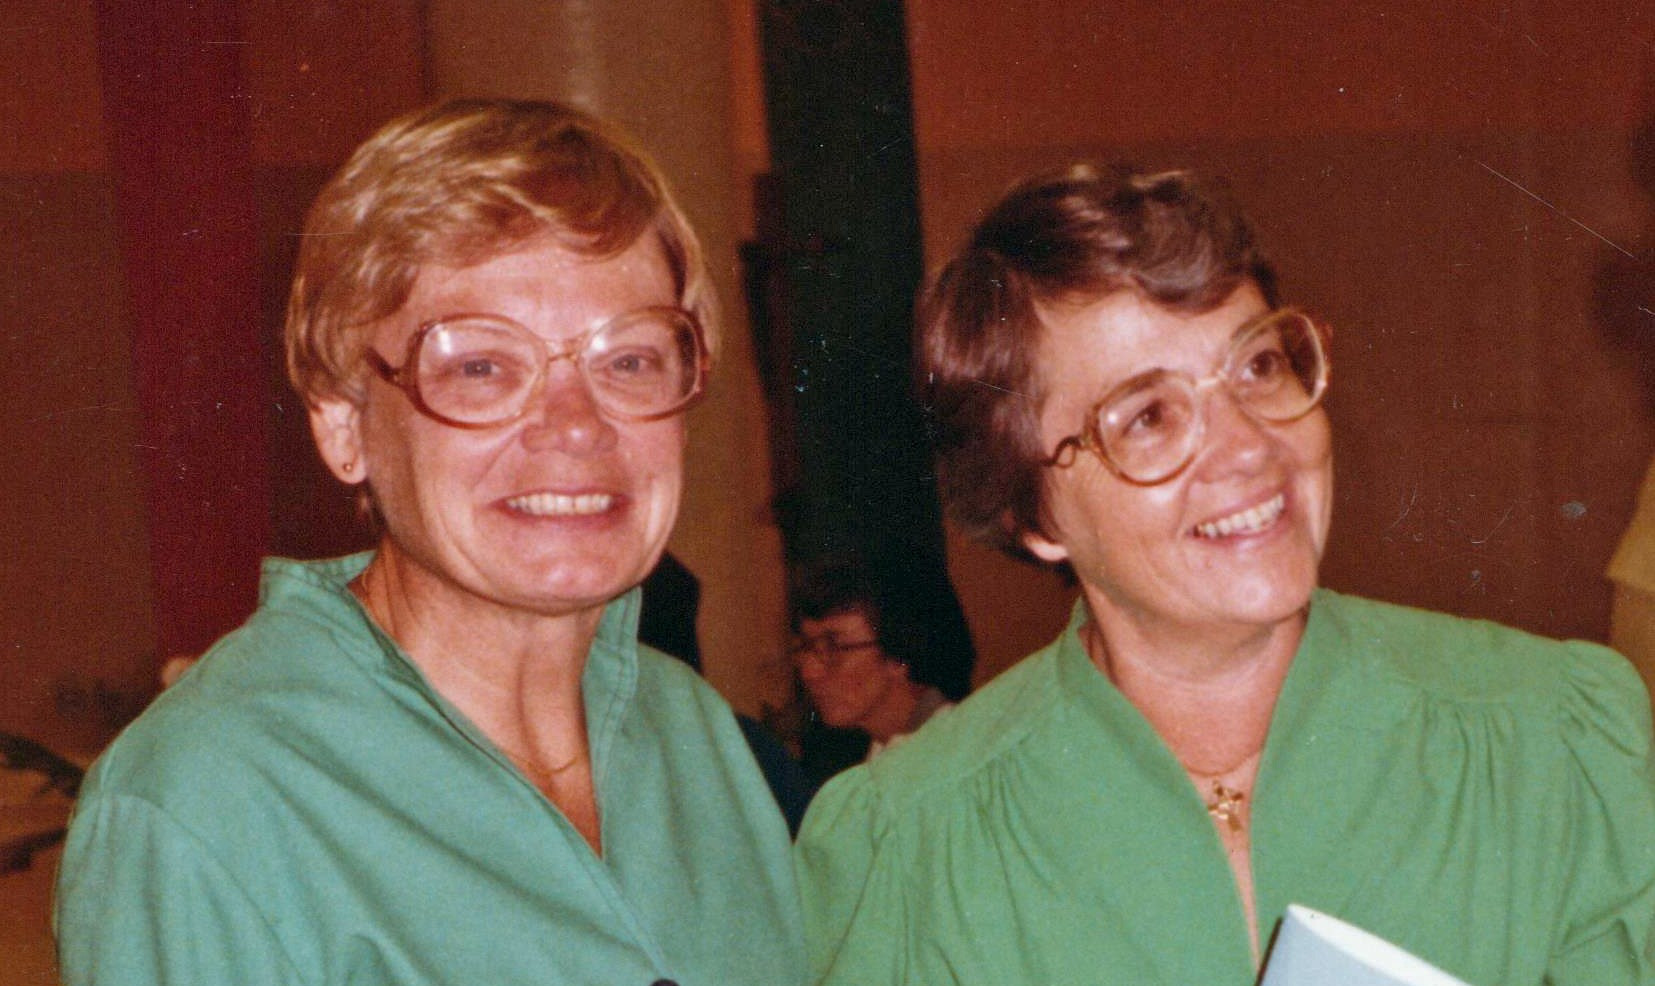 During the 1960's, many sisters in both the United Sates and in Mexico began working in institutions not directly related to the Congregation. Parish ministry was introduced in the United States in 1968 when Sisters Helen Ann Collier, Alice Maria Rothermich, Joan Holden, and Jane Frances McGrail served as assistants to pastors in two parishes in St. Louis, Missouri. Pictured are Srs. Annette Pezold and Helen Ann Collier.